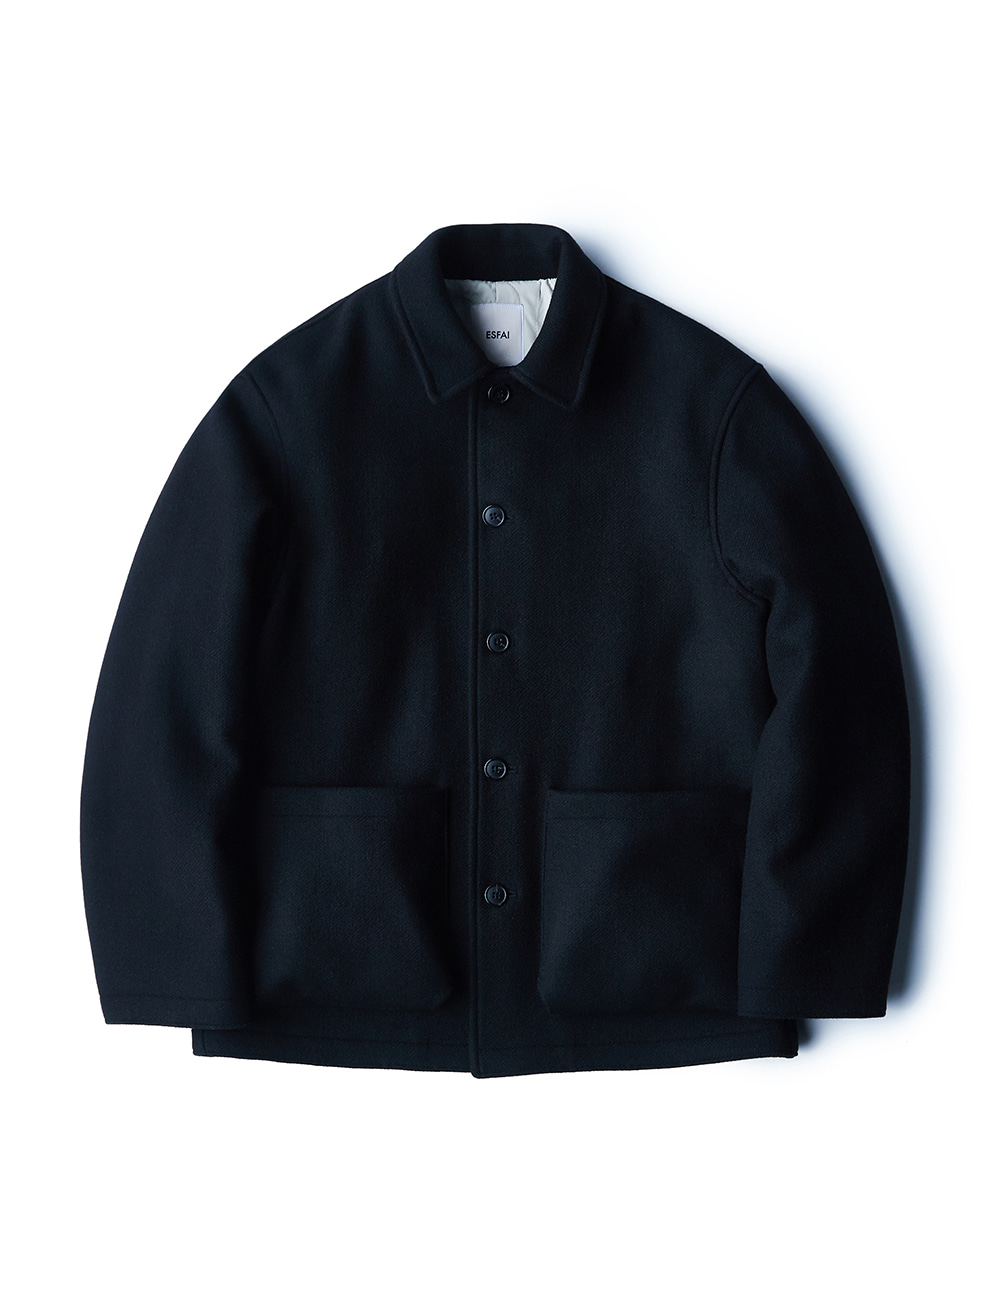 [ESFAI] fn21 Wool Jacket (Black)